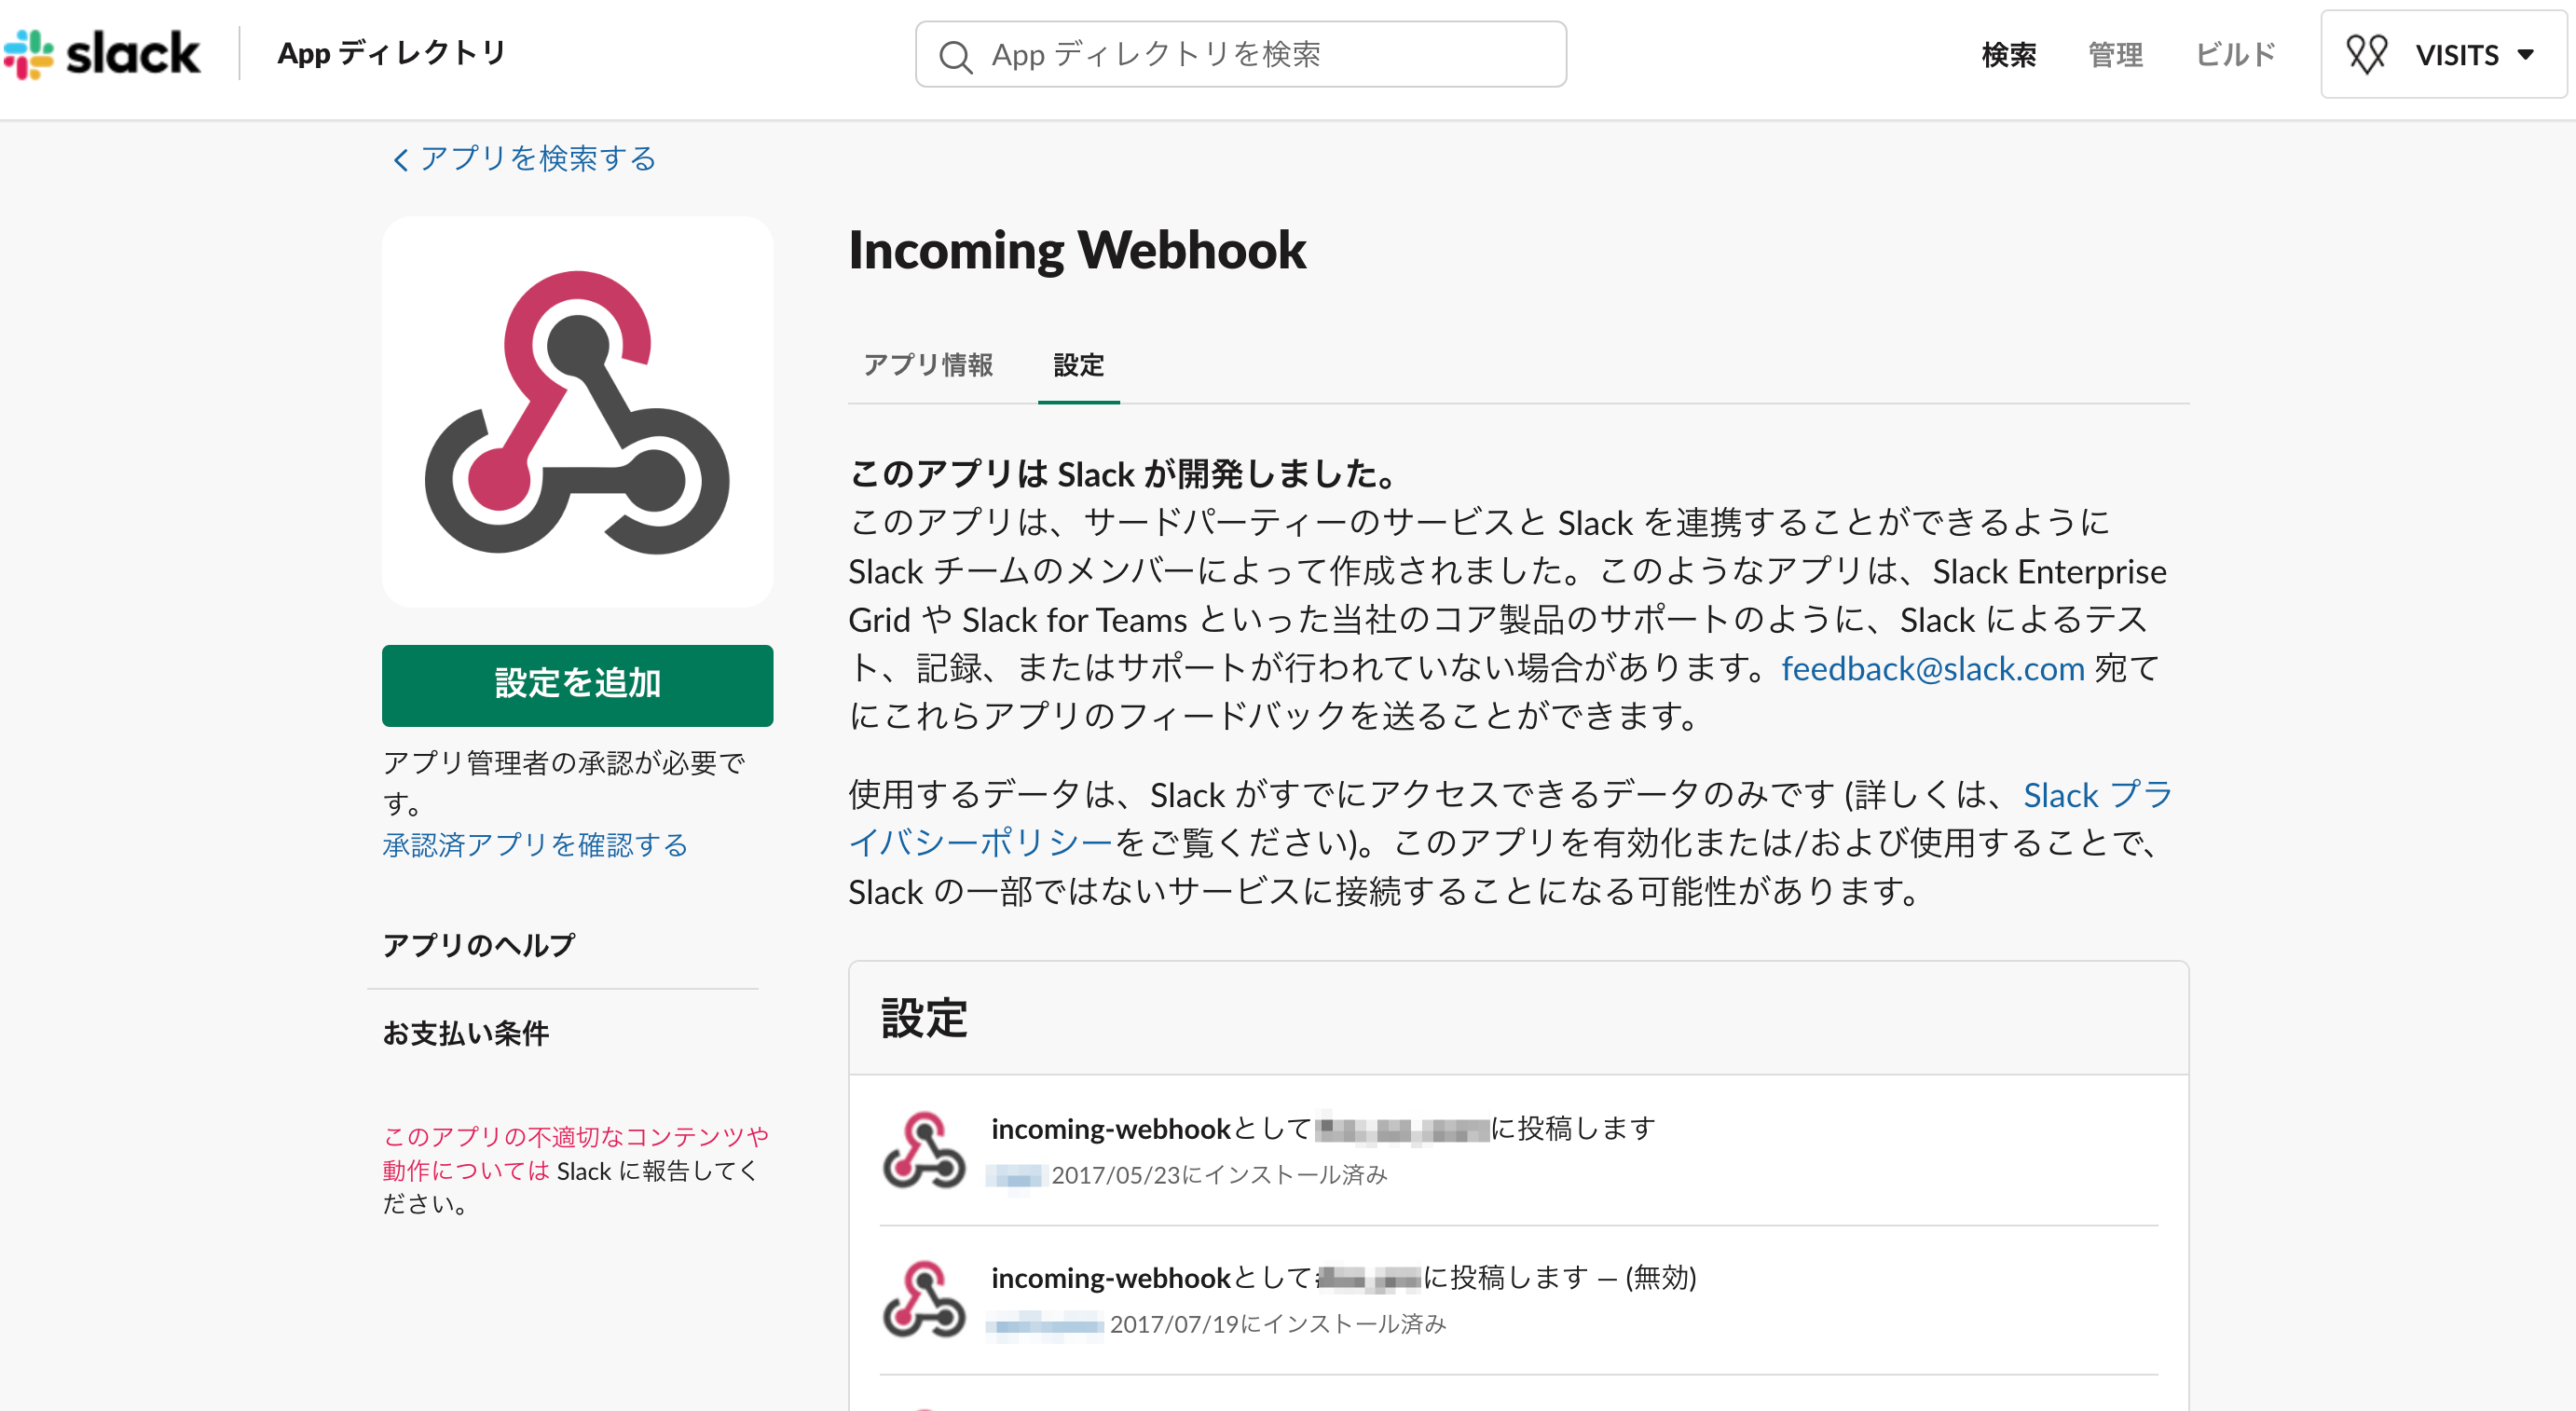 Incoming_Webhook___Slack_App_ディレクトリ.png